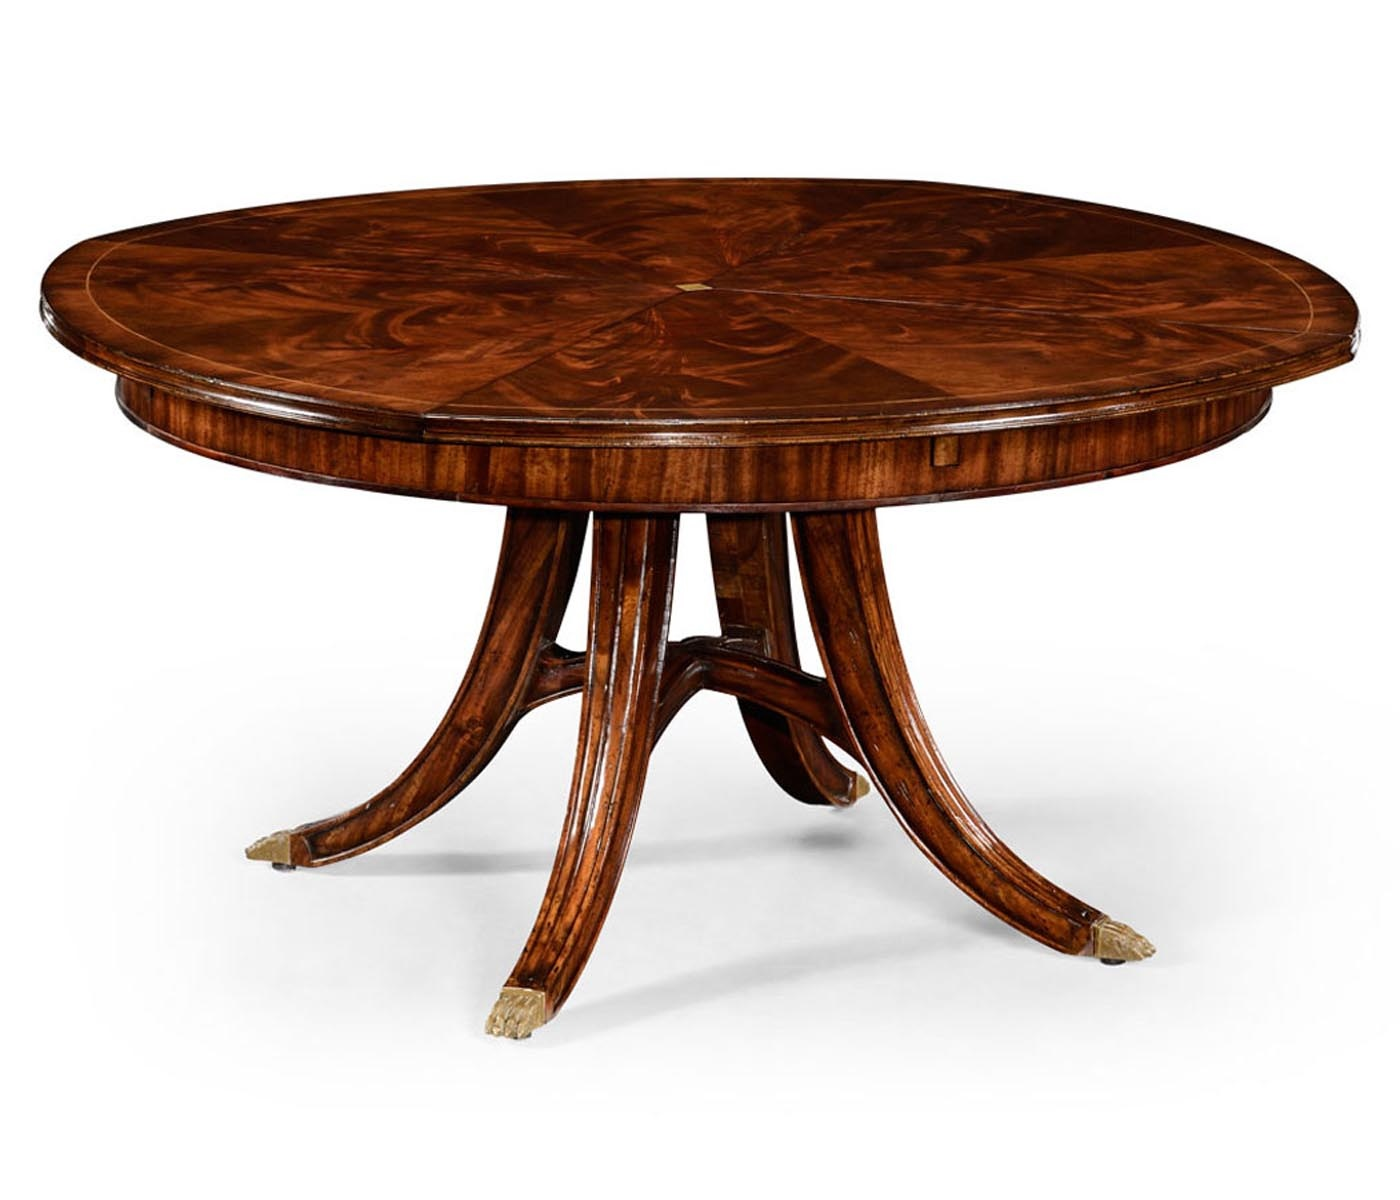 8 10 seater round extending dining table swanky interiors for On the dining table